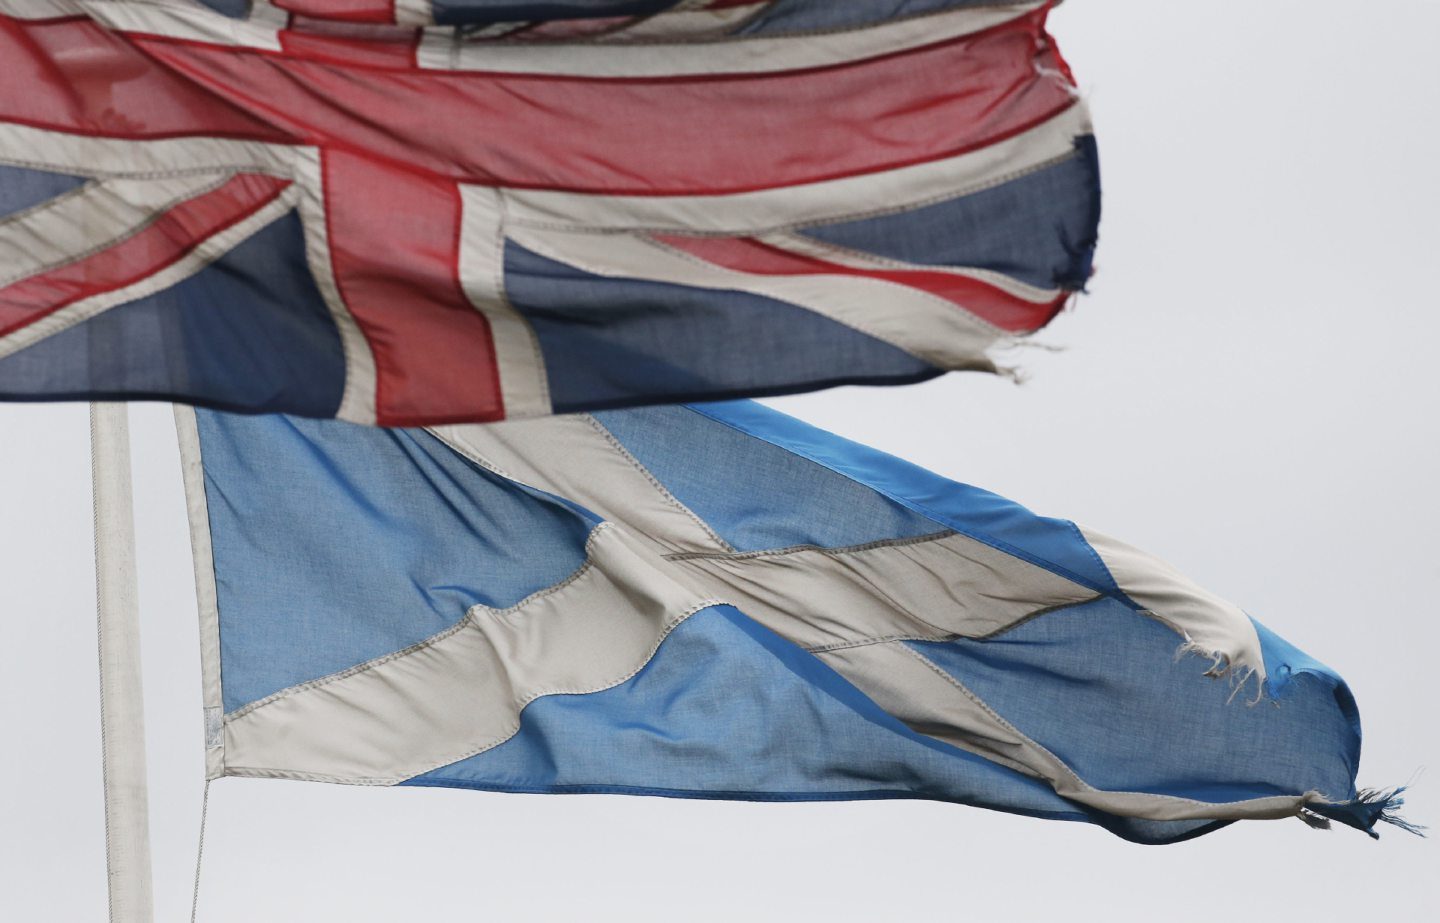 flags of Scotland and the union